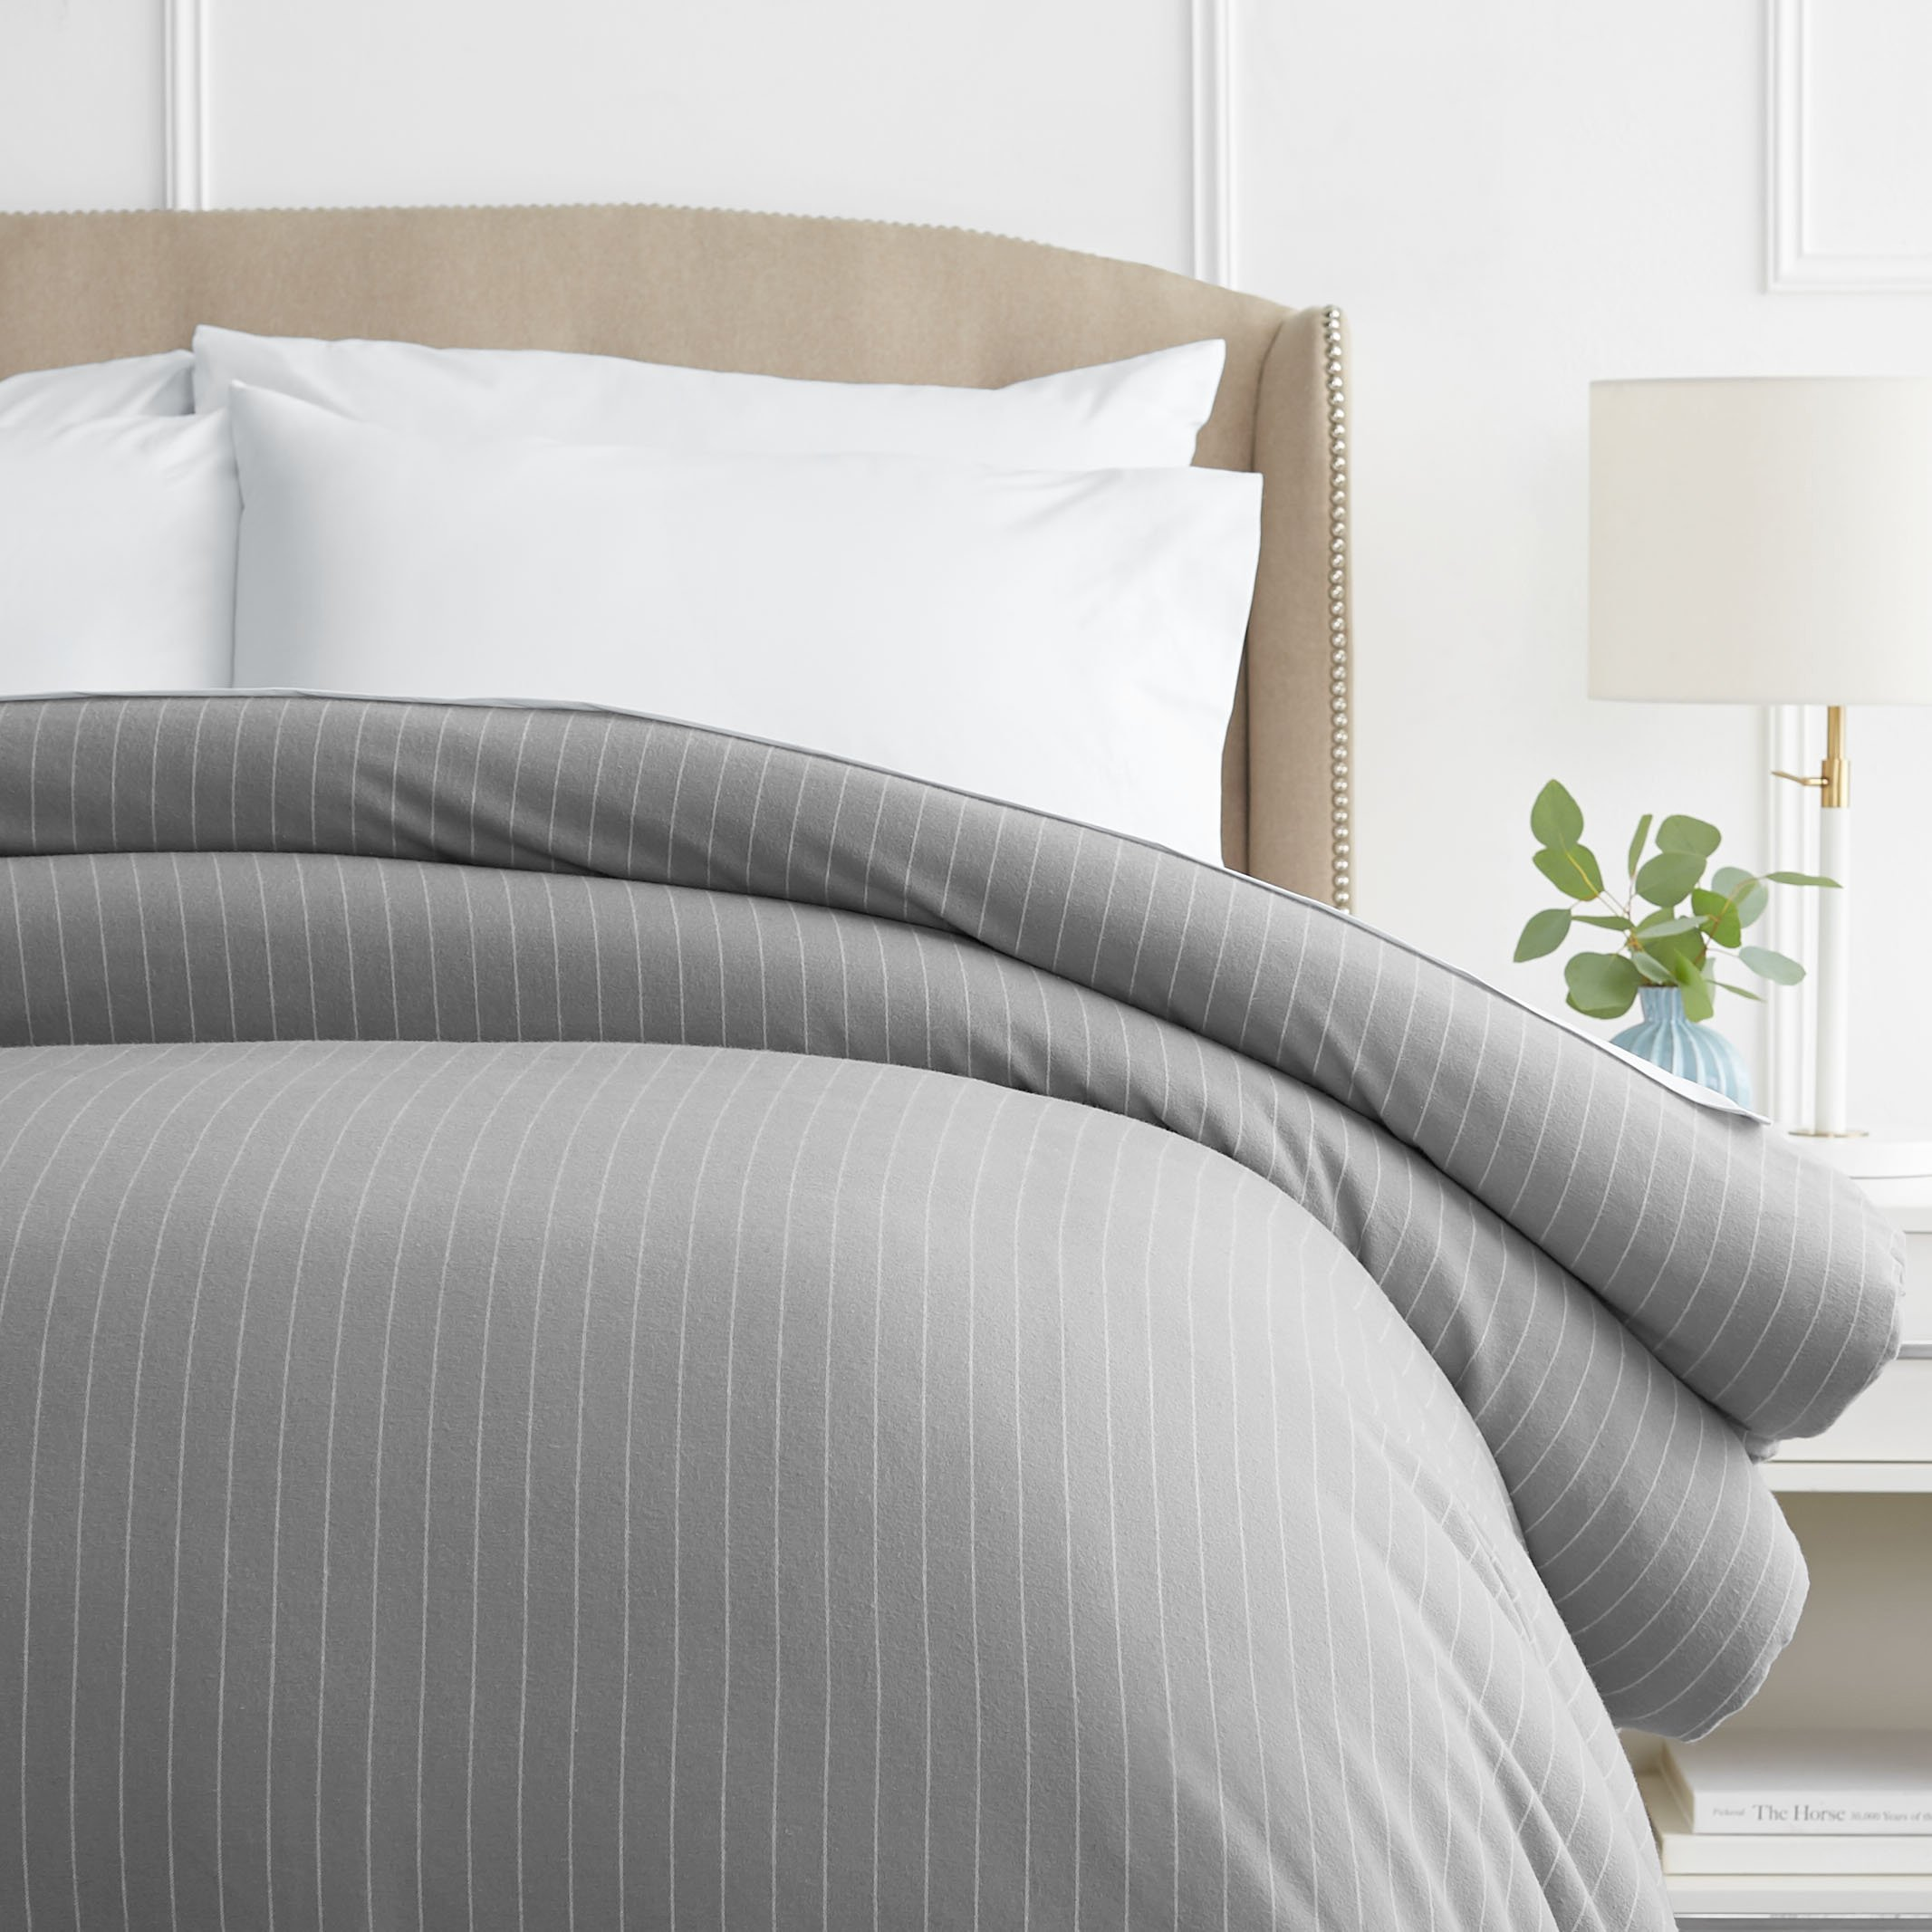 Pinzon 160 Gram Pinstripe Flannel Duvet Cover - Full/Queen, Grey Pinstripe